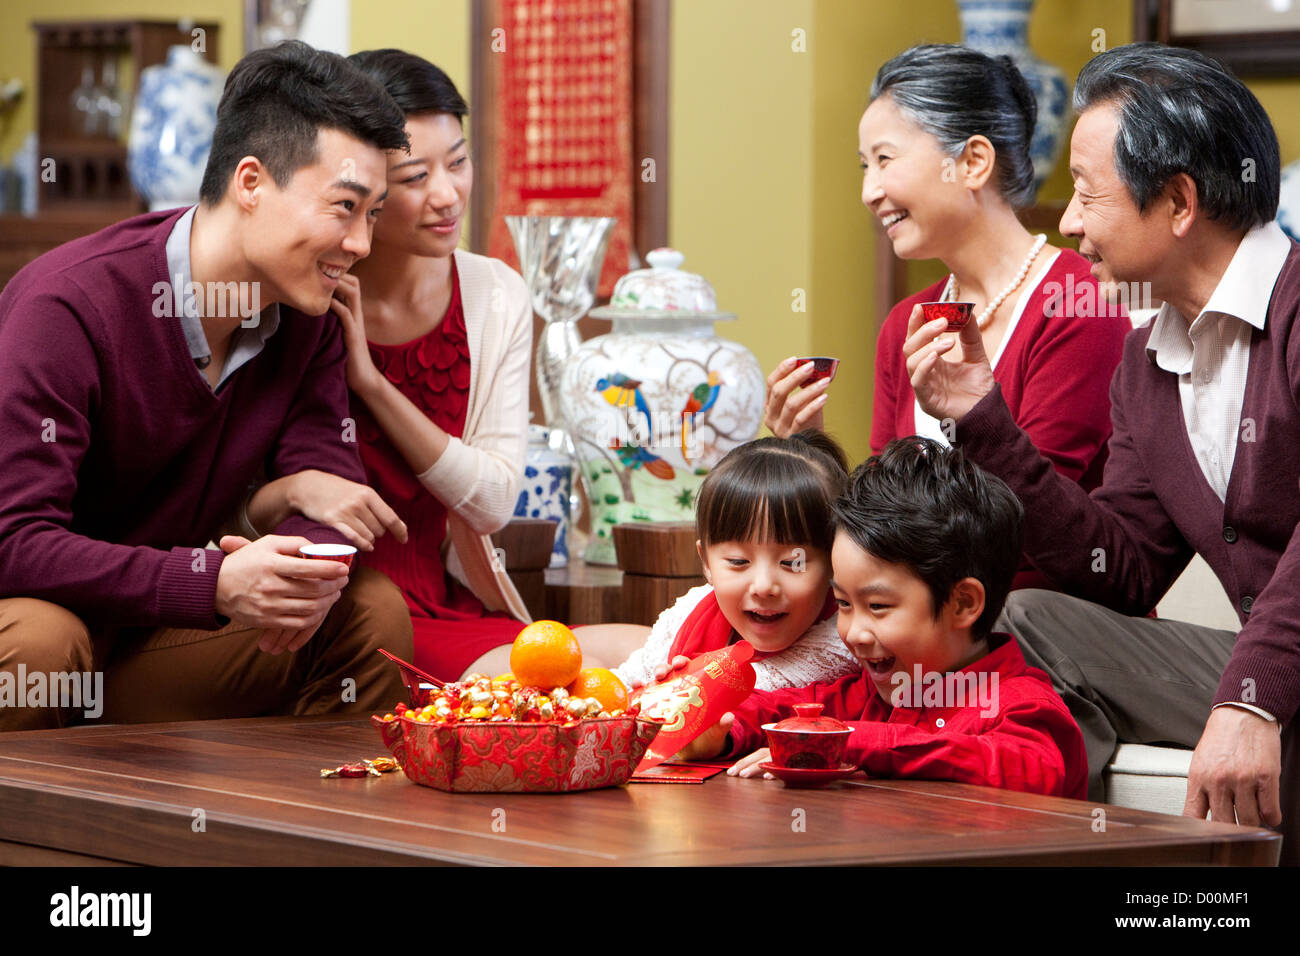 Happy family celebrating Chinese New Year with decorations ... |Family Celebrating Chinese New Year